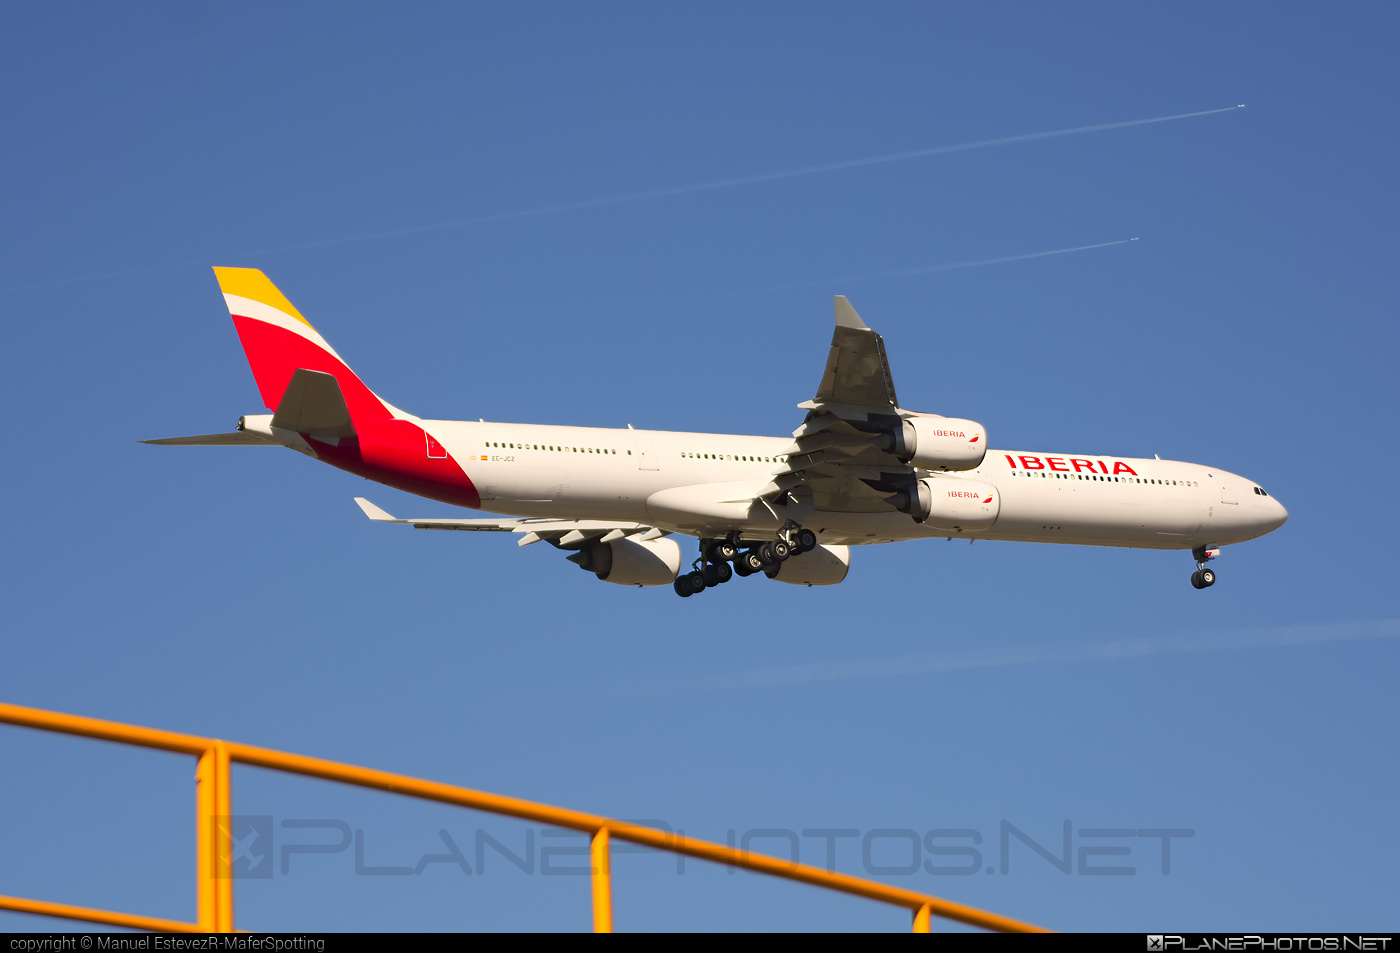 Airbus A340-642 - EC-JCZ operated by Iberia #a340 #a340family #airbus #airbus340 #iberia